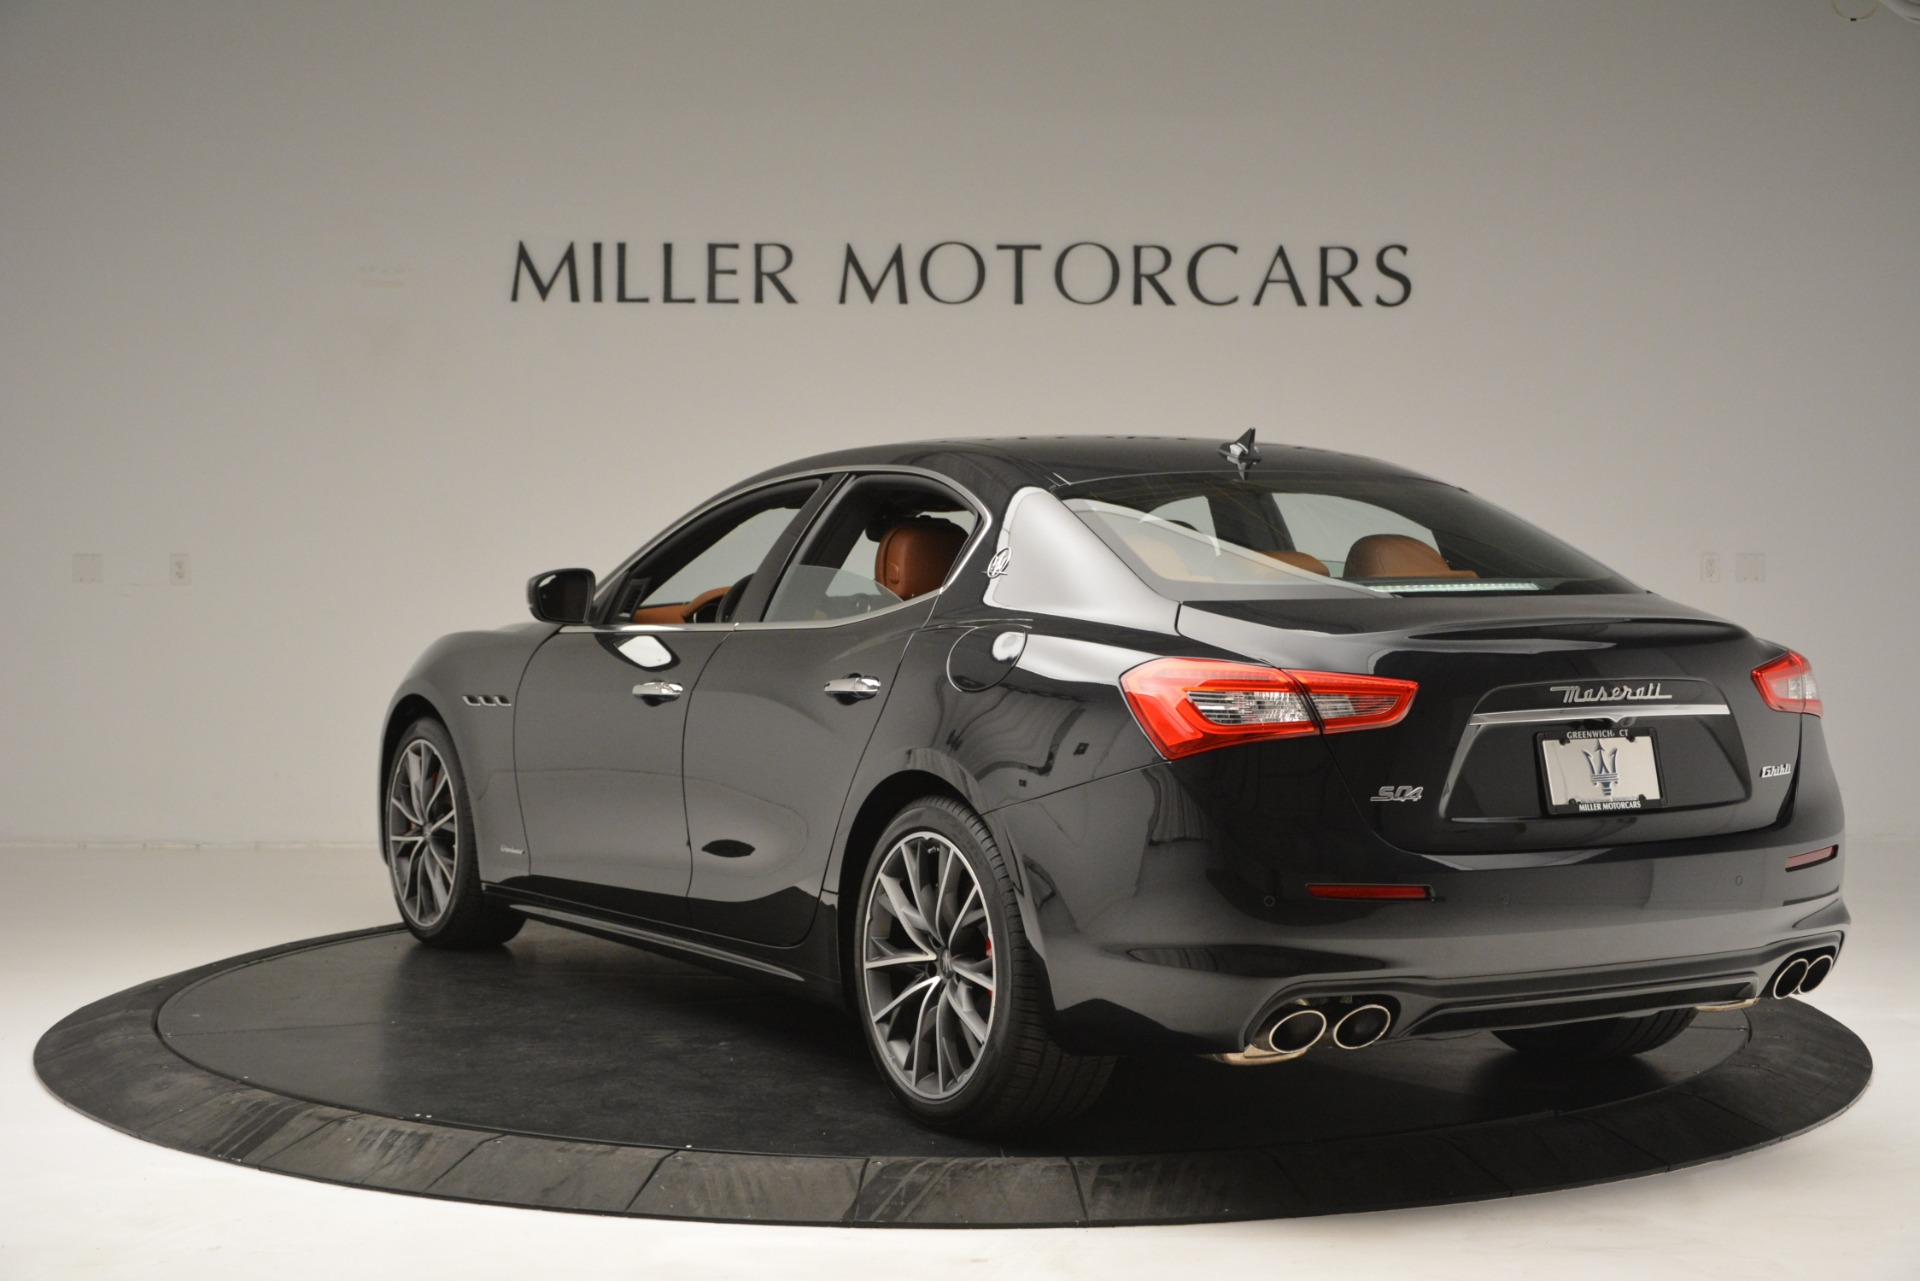 New 2019 Maserati Ghibli S Q4 GranLusso For Sale In Greenwich, CT. Alfa Romeo of Greenwich, M2222 2589_p5